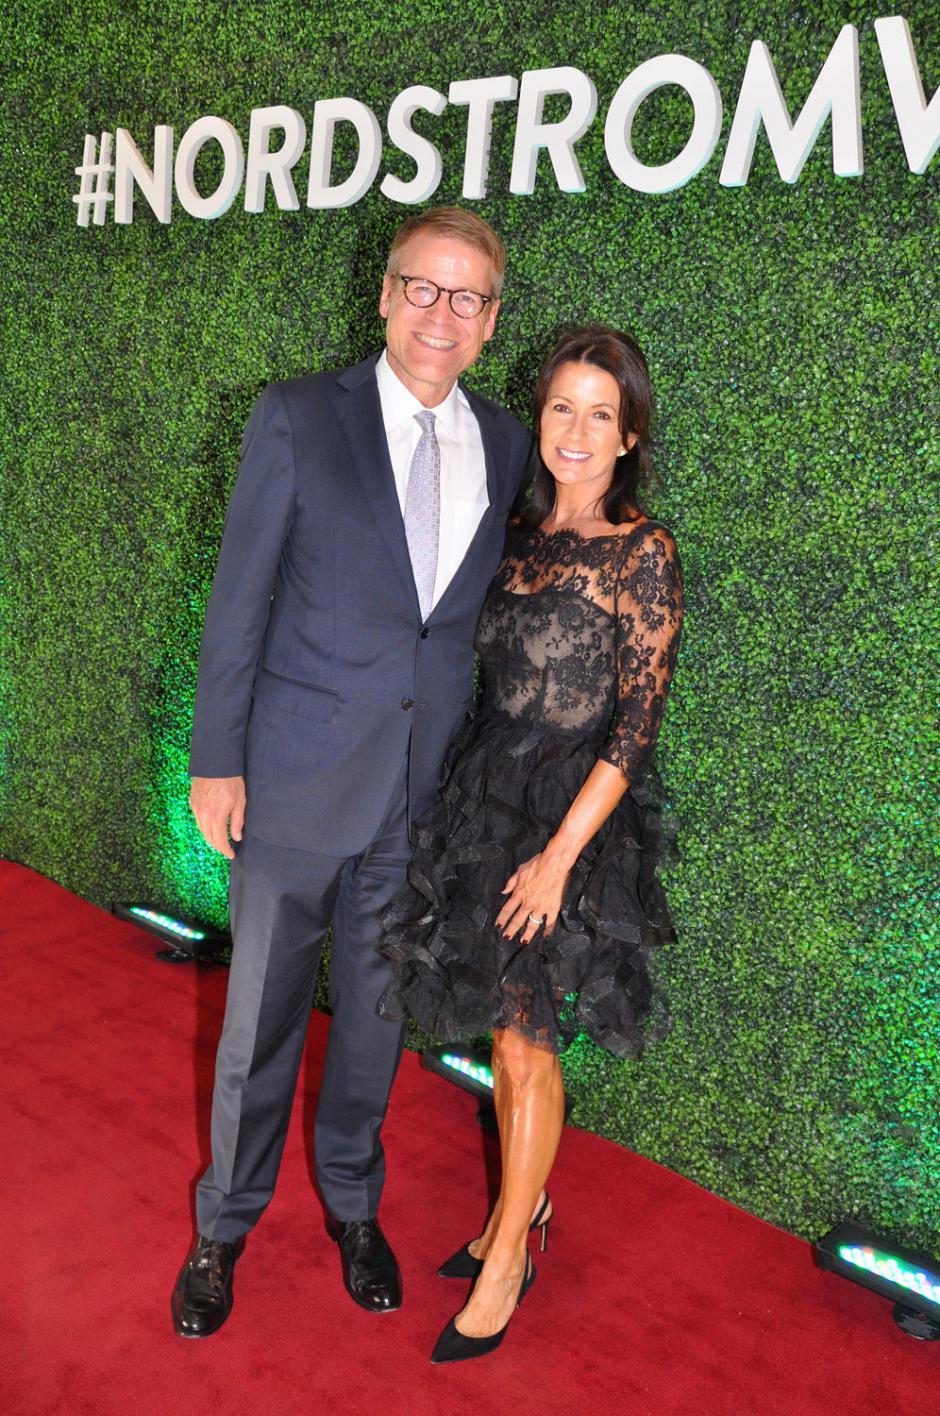 Blake Nordstrom, Nordstrom co-president; and his wife, Molly Nordstrom